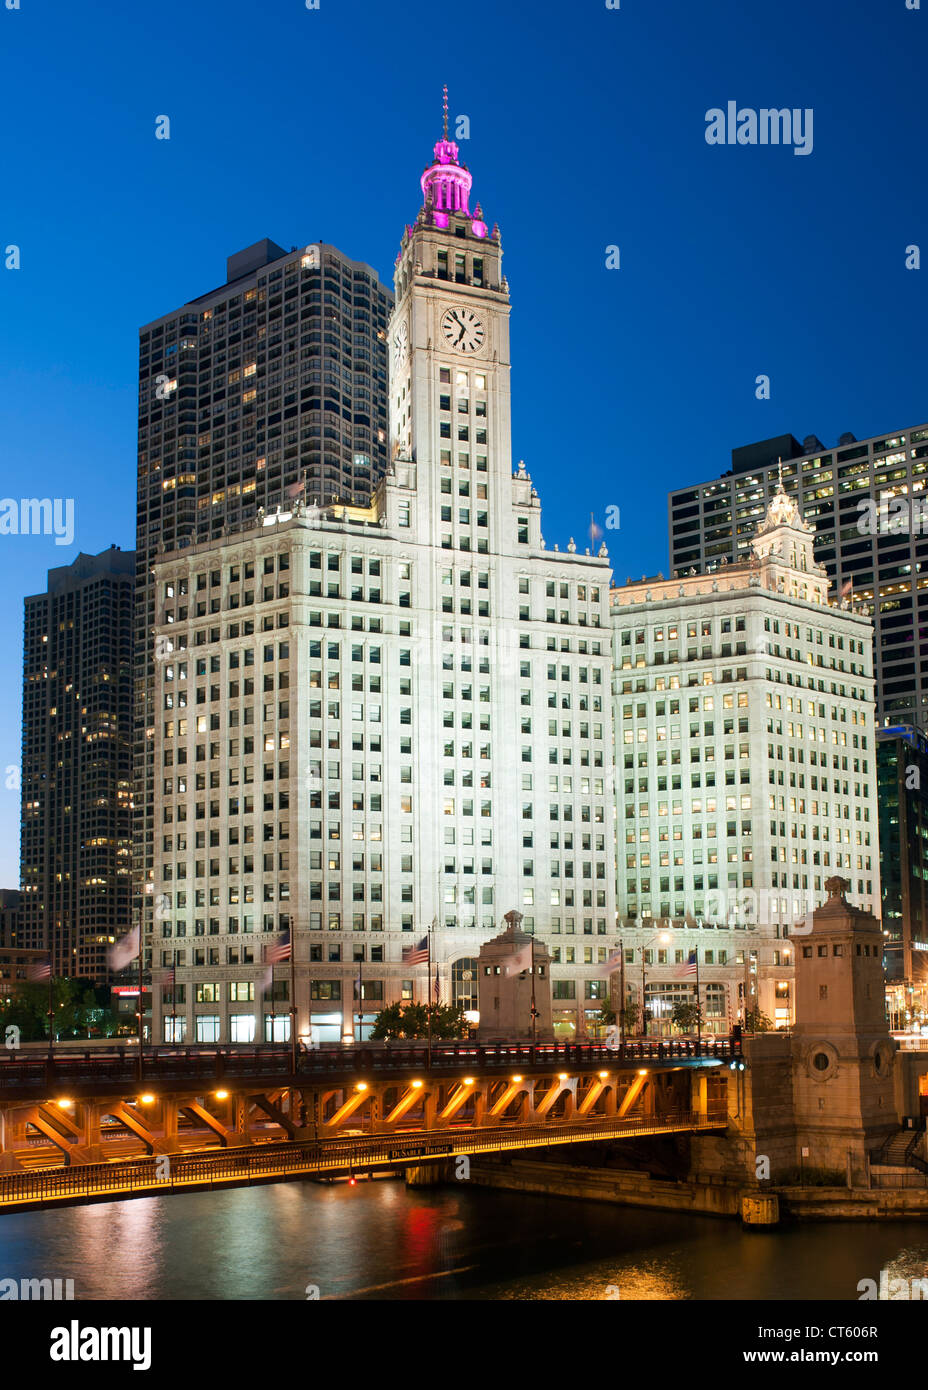 Night-time view of the Michigan Avenue Bridge (officially DuSable Bridge) and the Wrigley building in Chicago, Illinois, - Stock Image